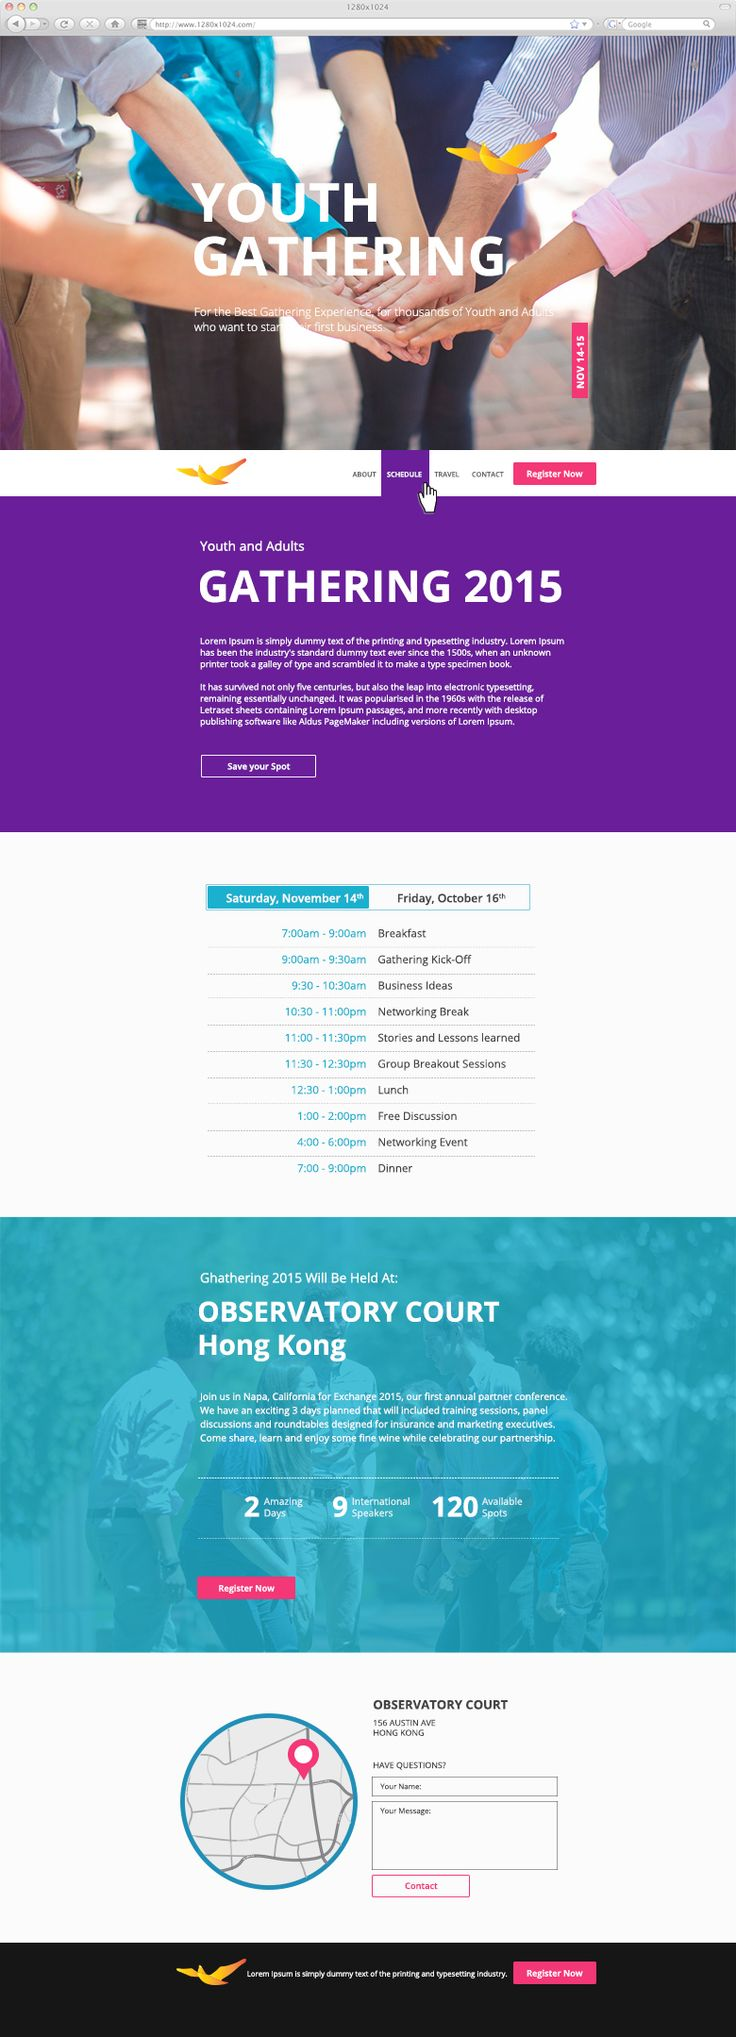 Parallax Scrolling One Pager Website — UnfoldAtelier: Boost Sales with Friendly Design